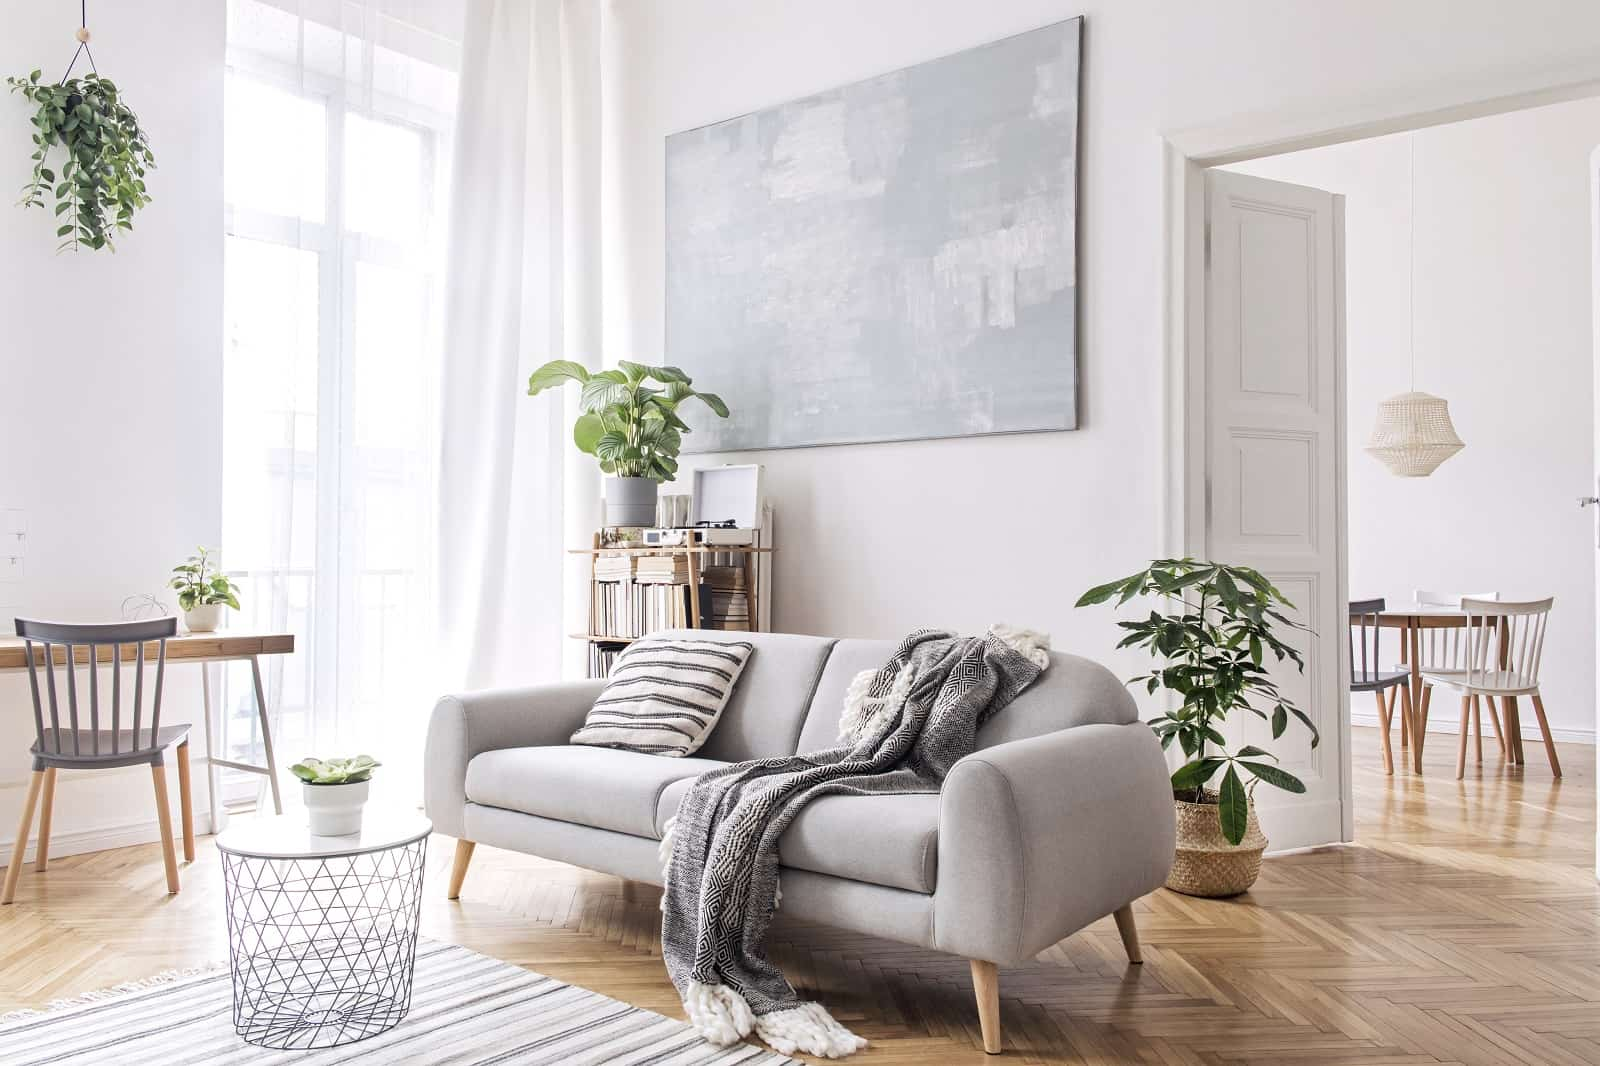 15 Simple Changes That Can Make Your Living Room Much Cozier. Minimalistic design with gray sofa and plants along with black chalkboard at the wall